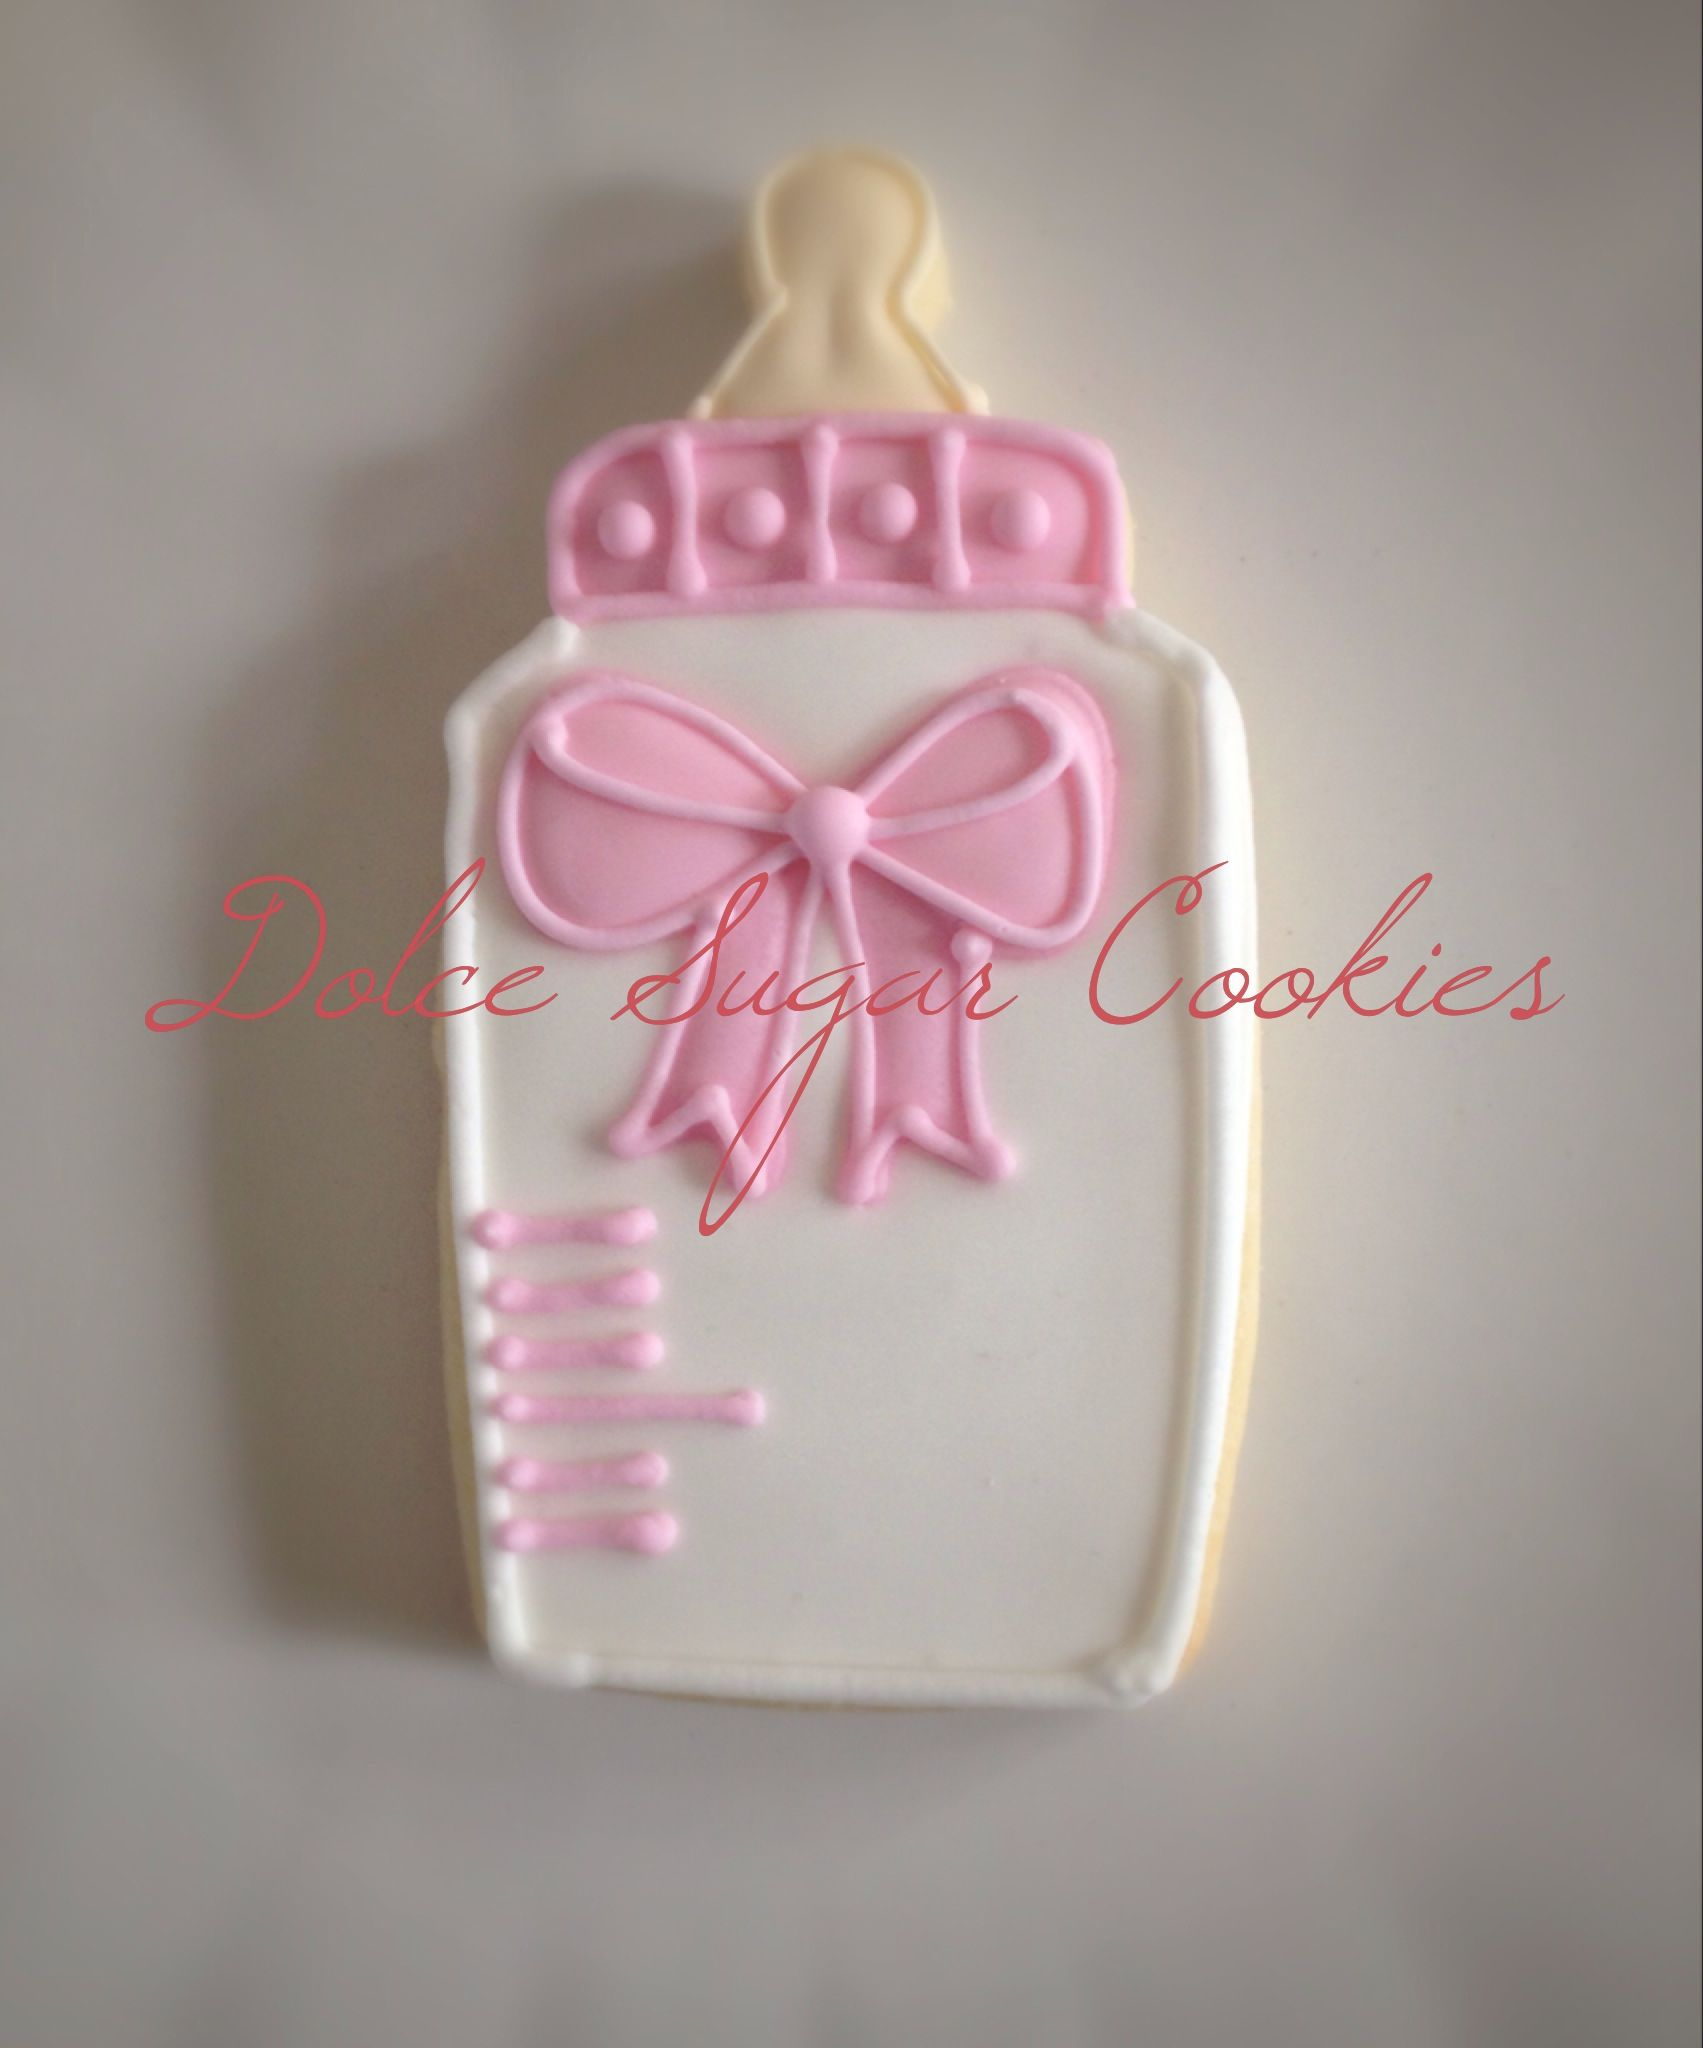 Baby Bottle | Dolce Sugar Cookies Collection | Pinterest | Bottle ...